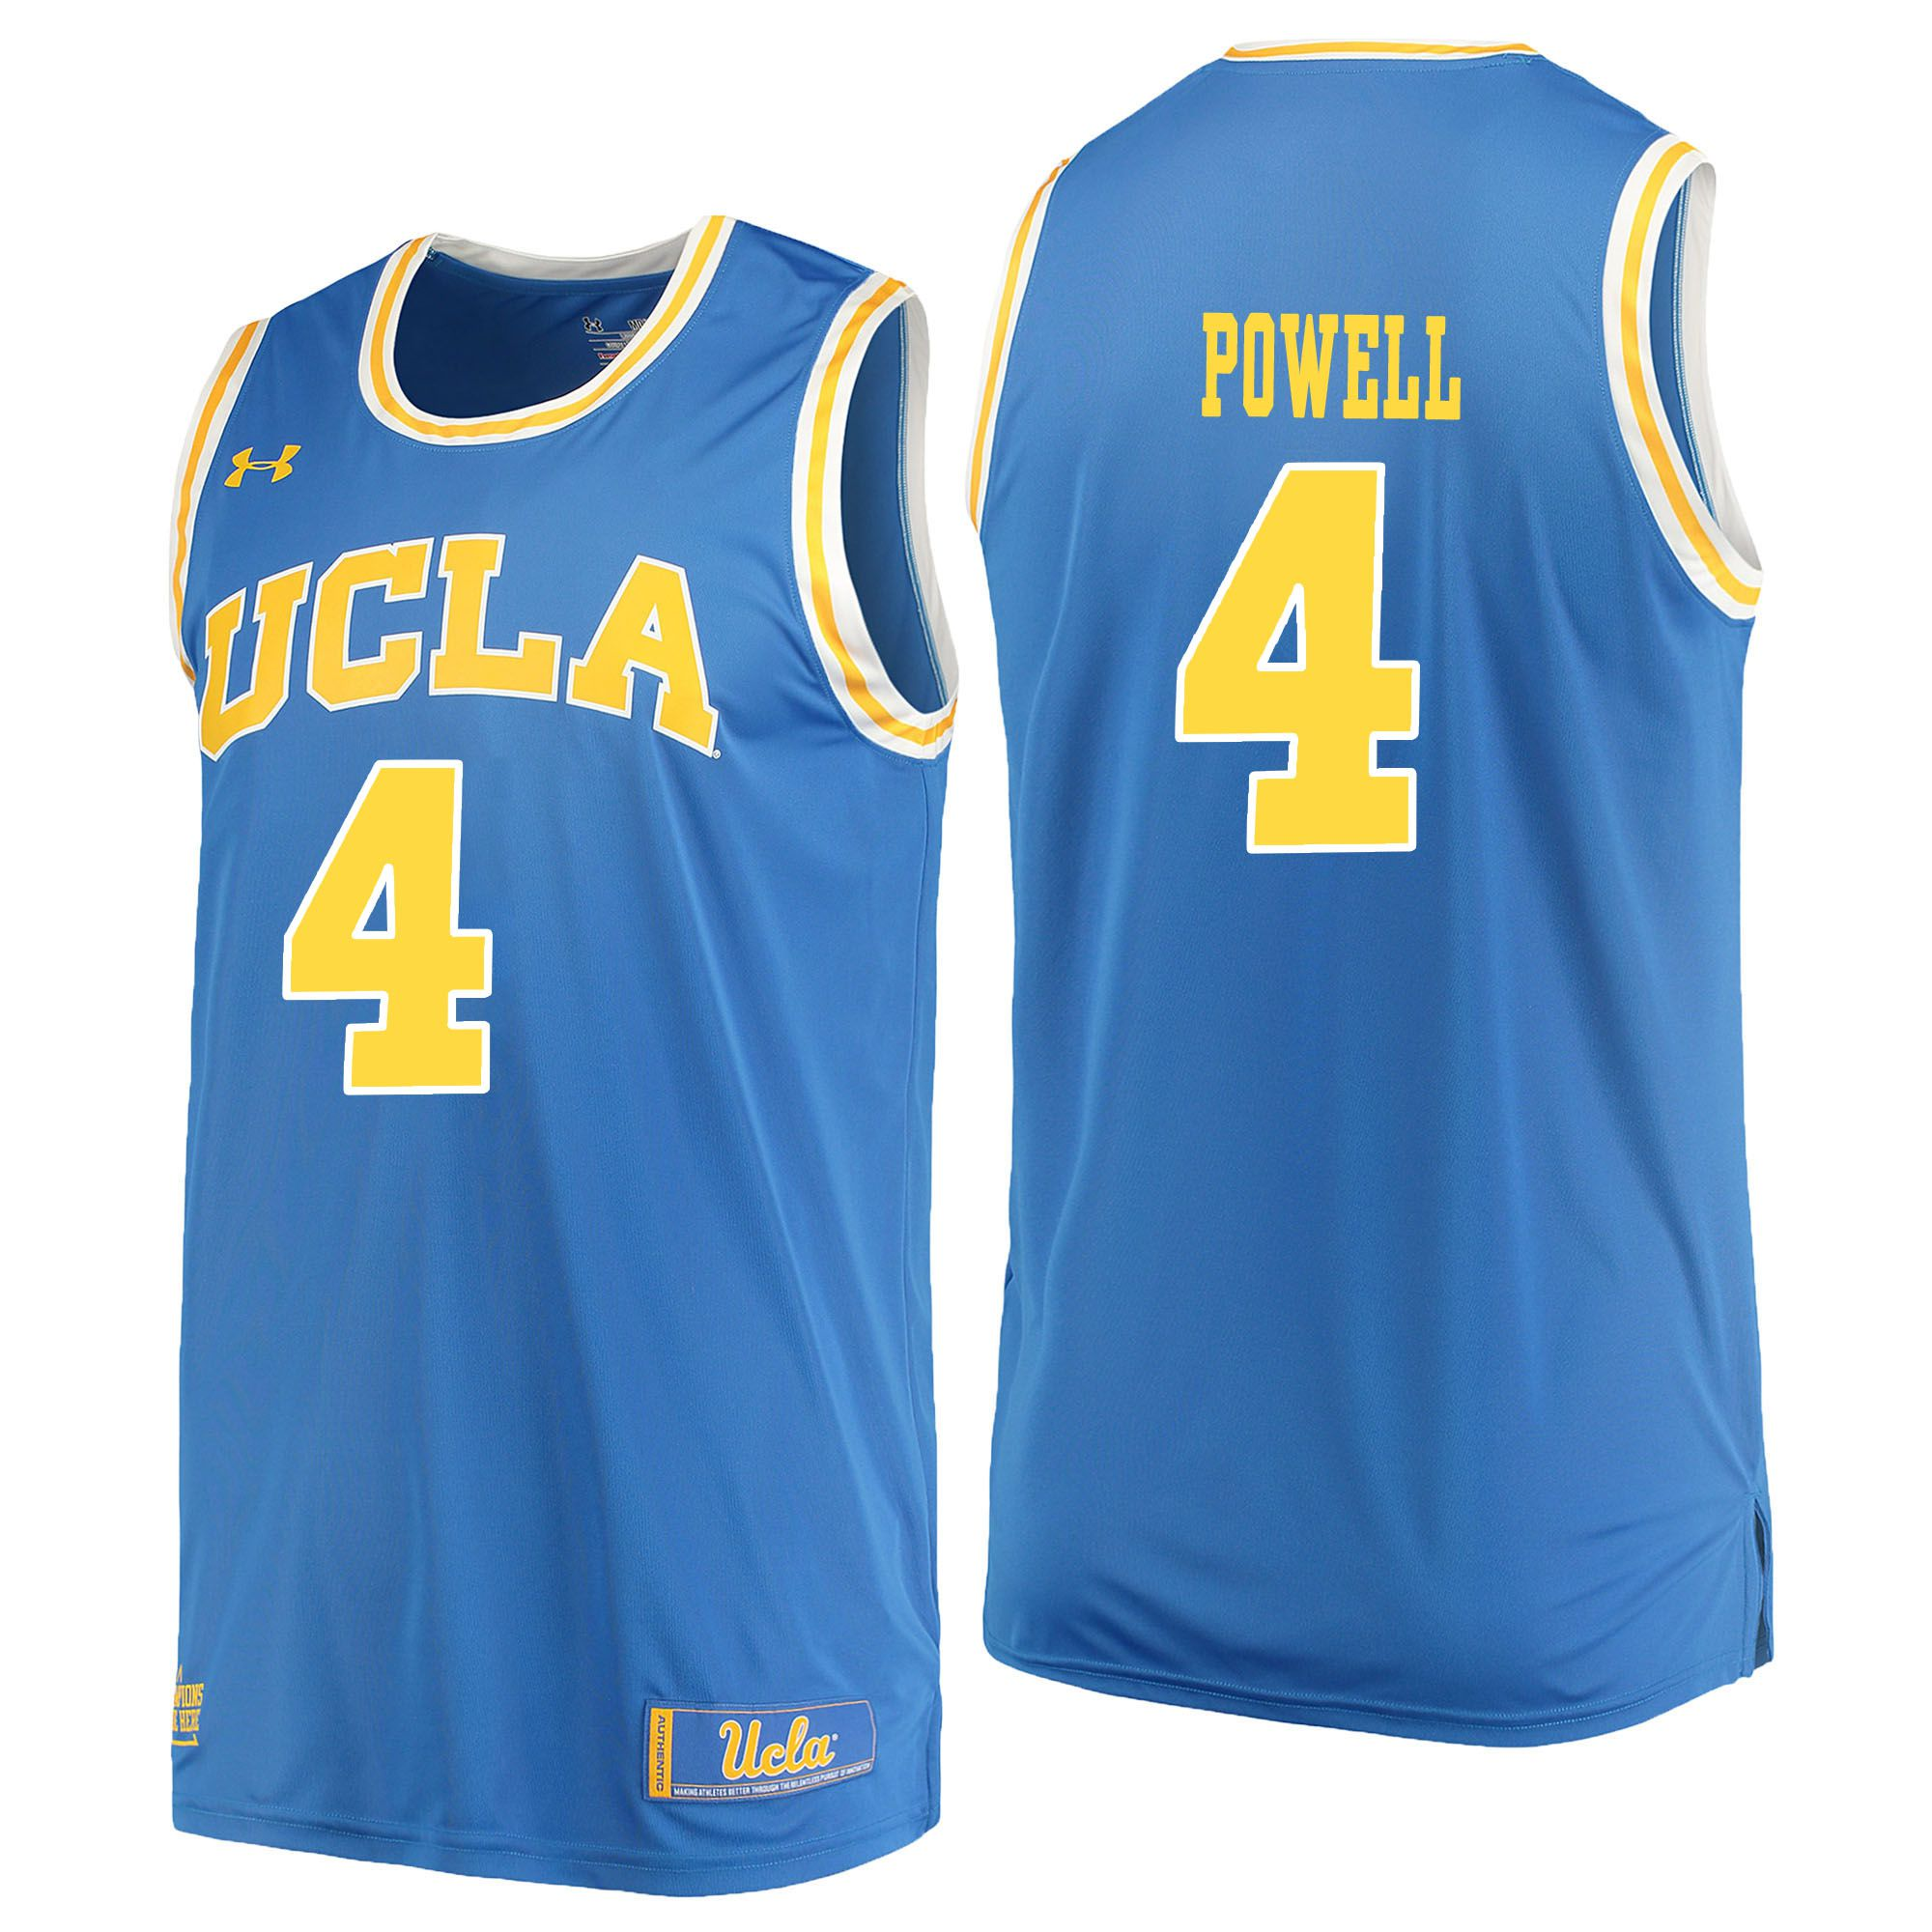 Men UCLA UA 4 Powell Light Blue Customized NCAA Jerseys